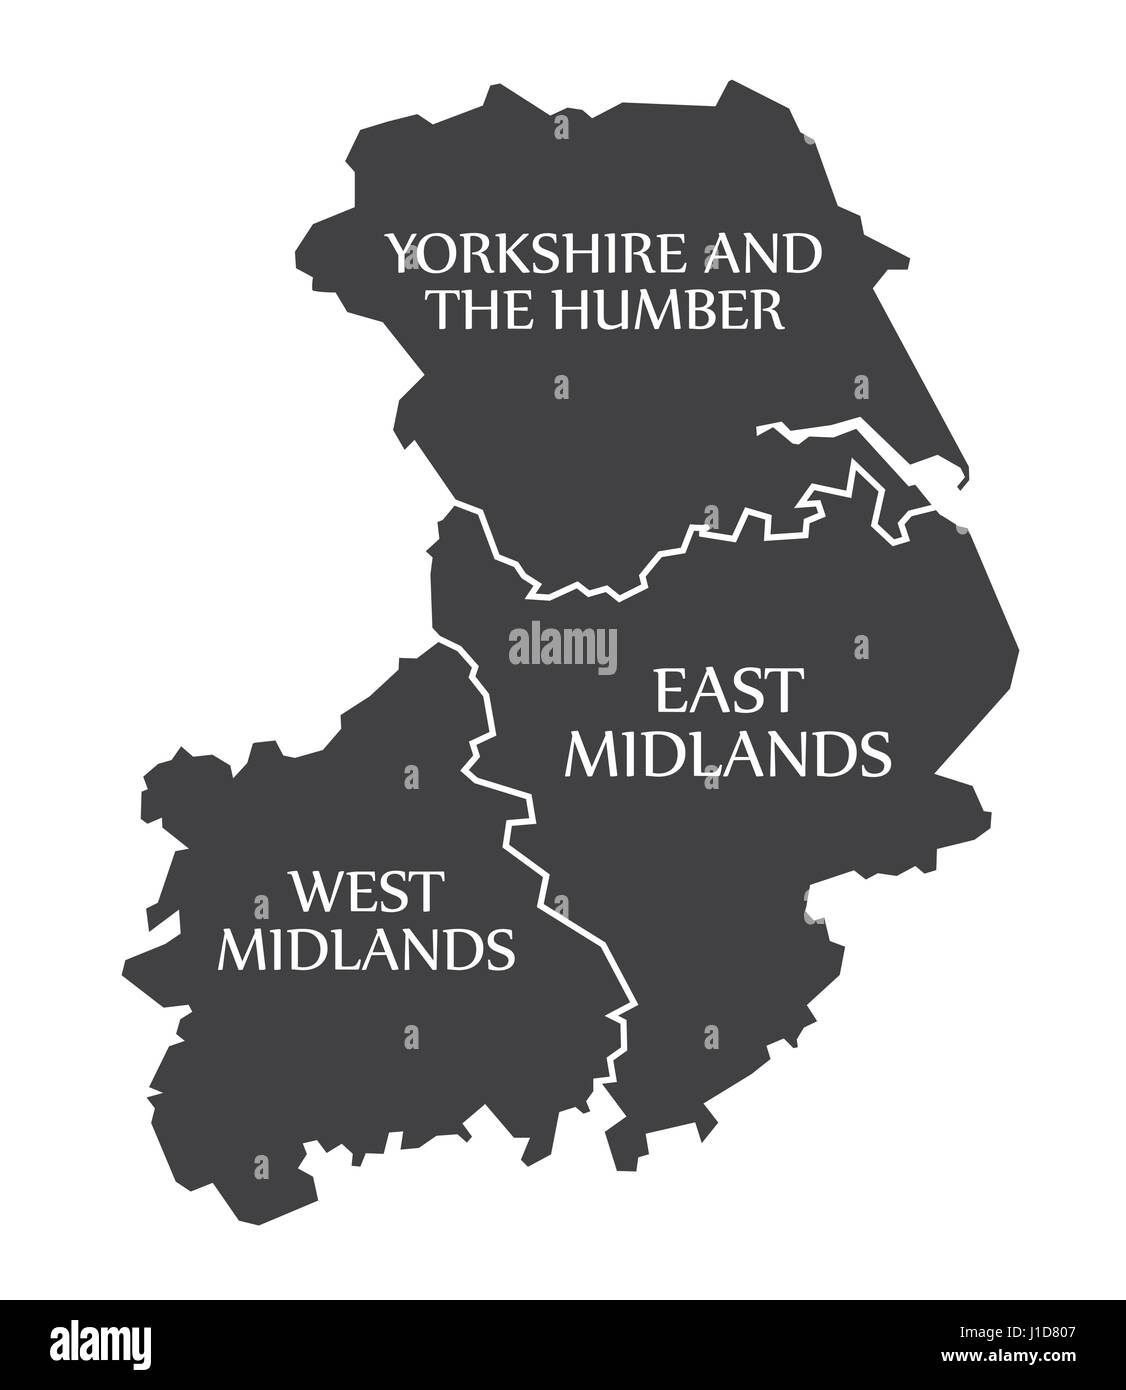 Yorkshire And The Humber East Midlands West Midlands Map Uk